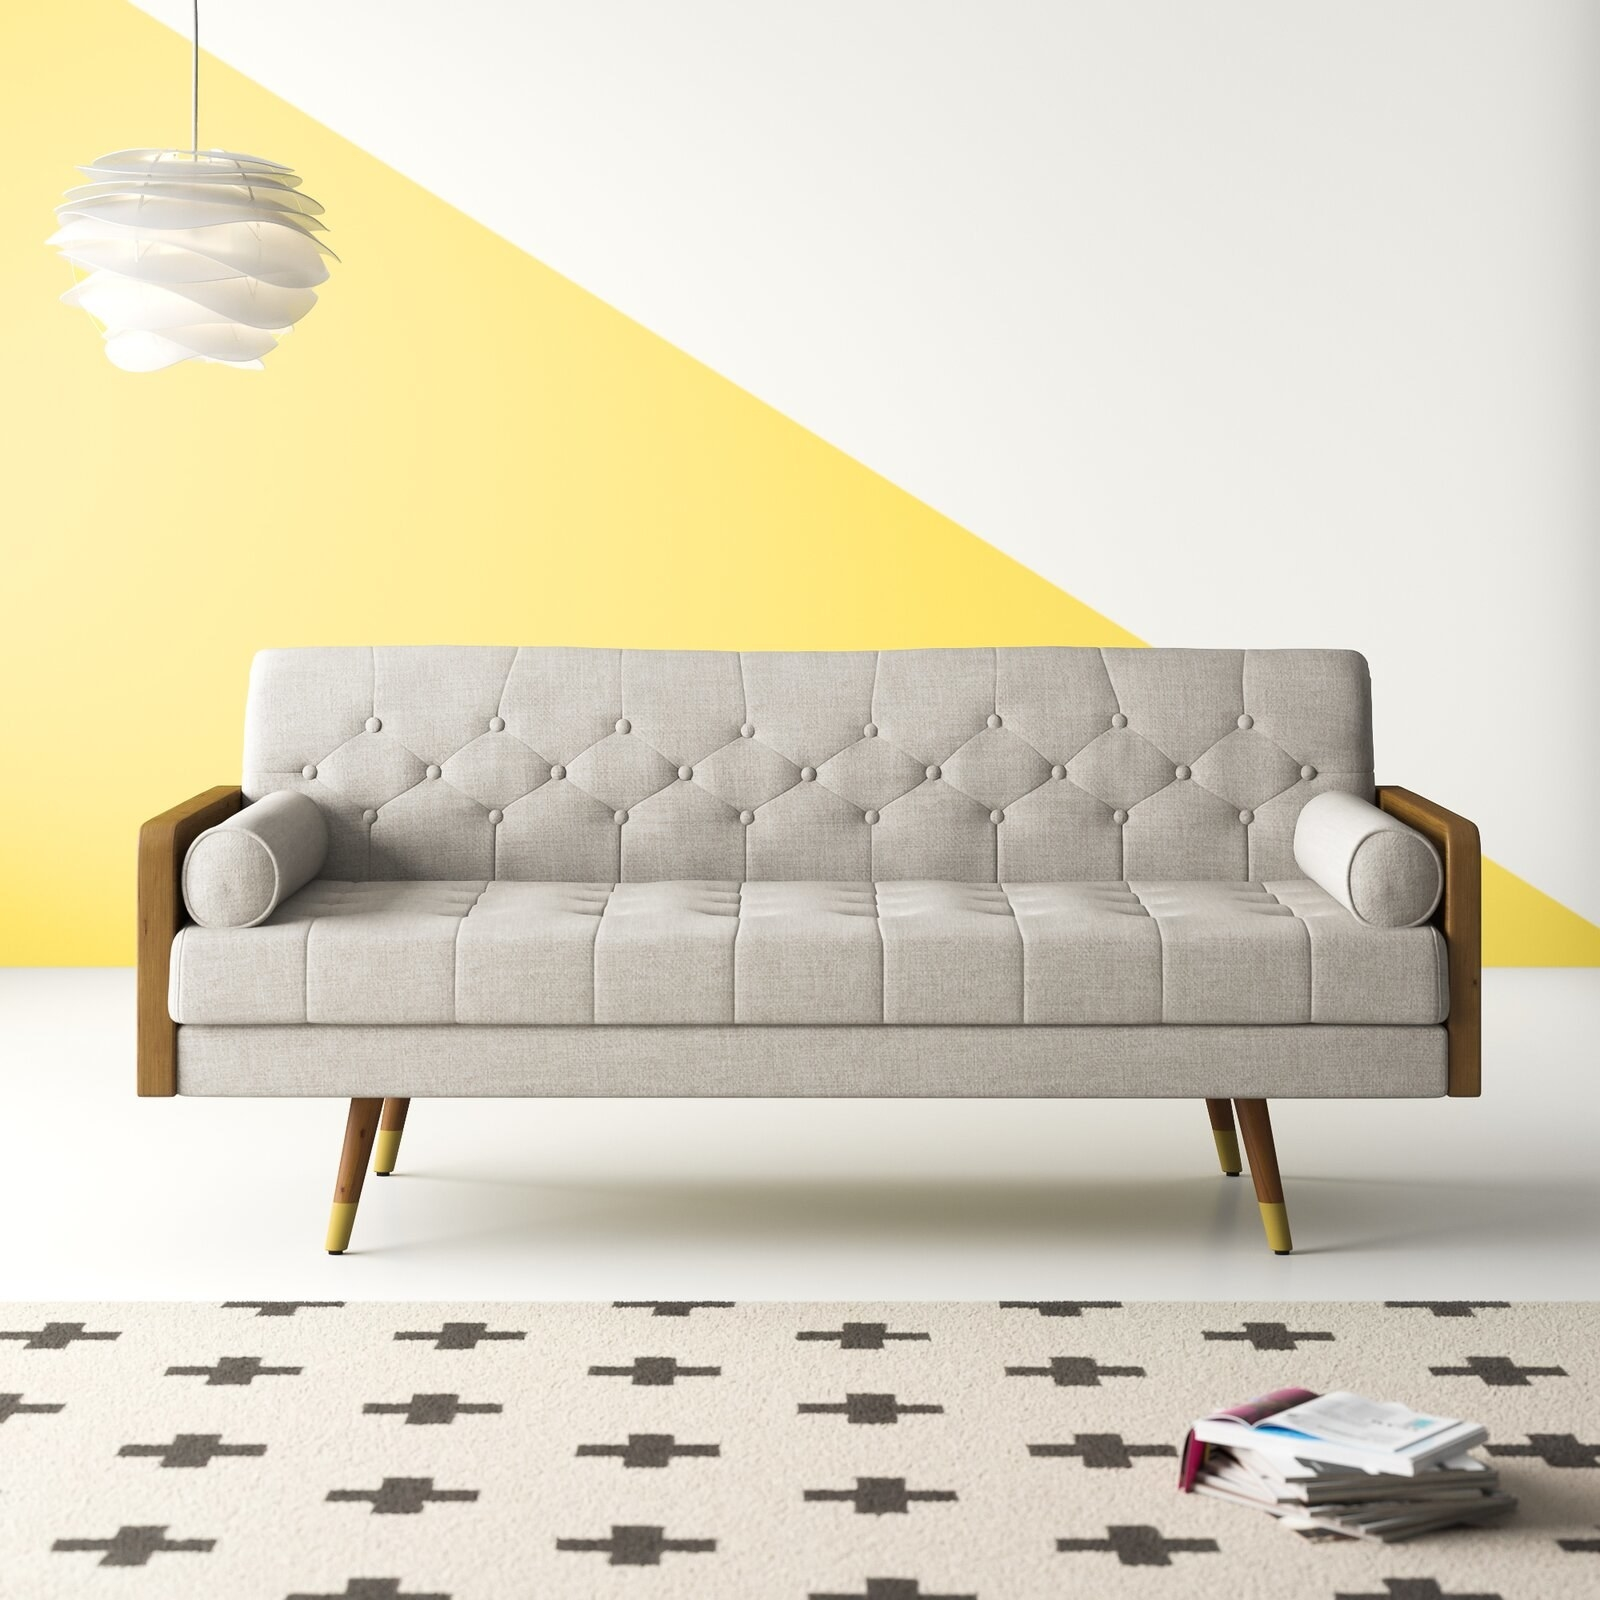 The square arm sofa in beige with wood sides and a tufted back